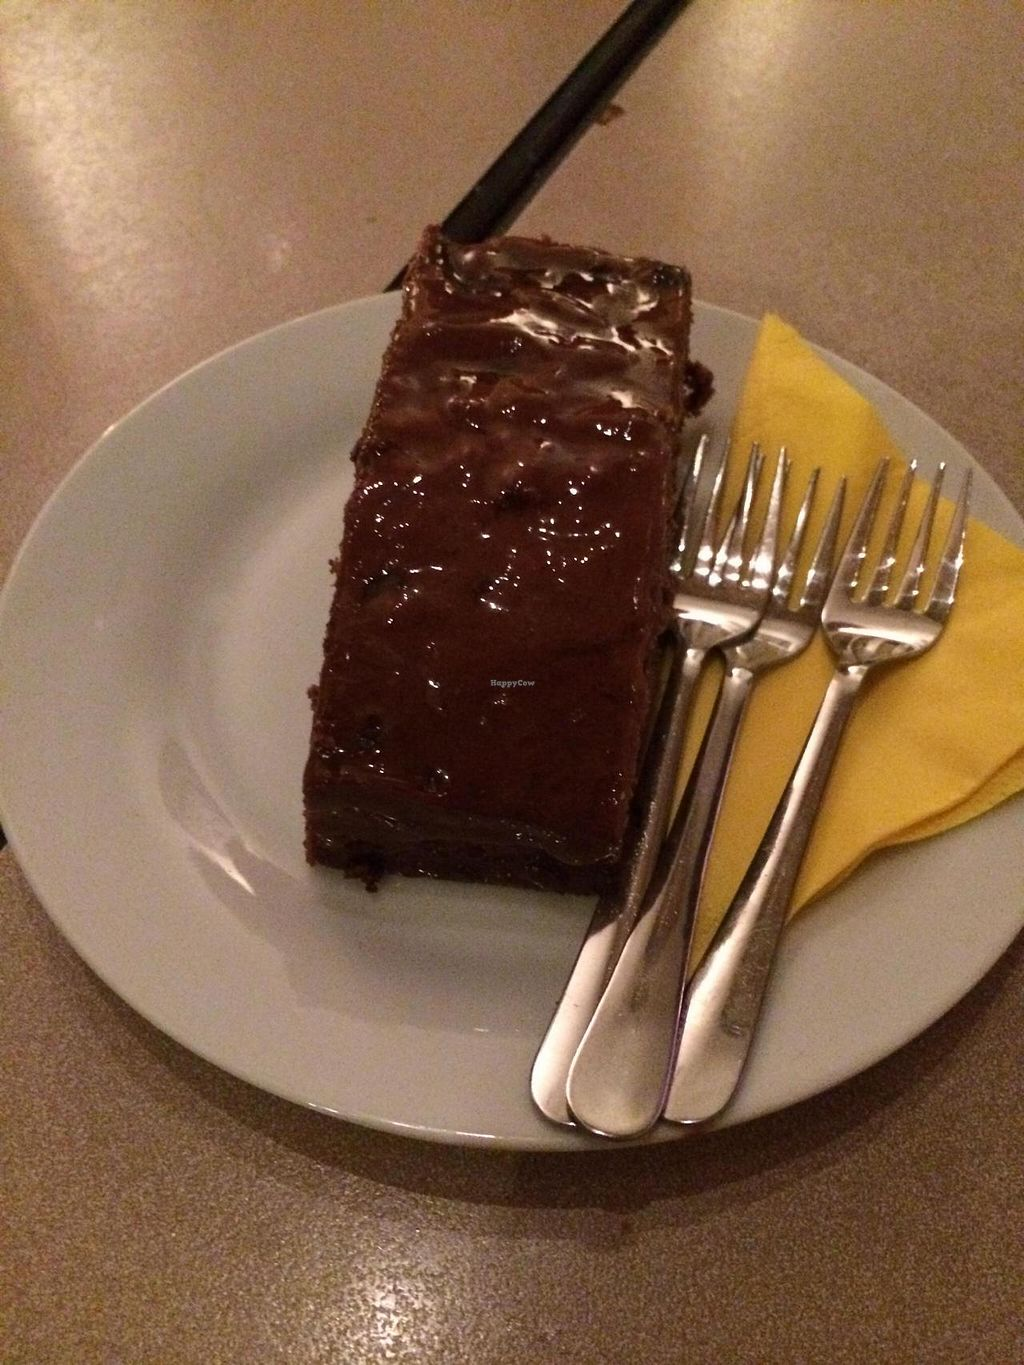 """Photo of Harvest Cafe Bistrot  by <a href=""""/members/profile/JazzyCow"""">JazzyCow</a> <br/>Chocolate and chili cake <br/> August 10, 2014  - <a href='/contact/abuse/image/37469/76461'>Report</a>"""